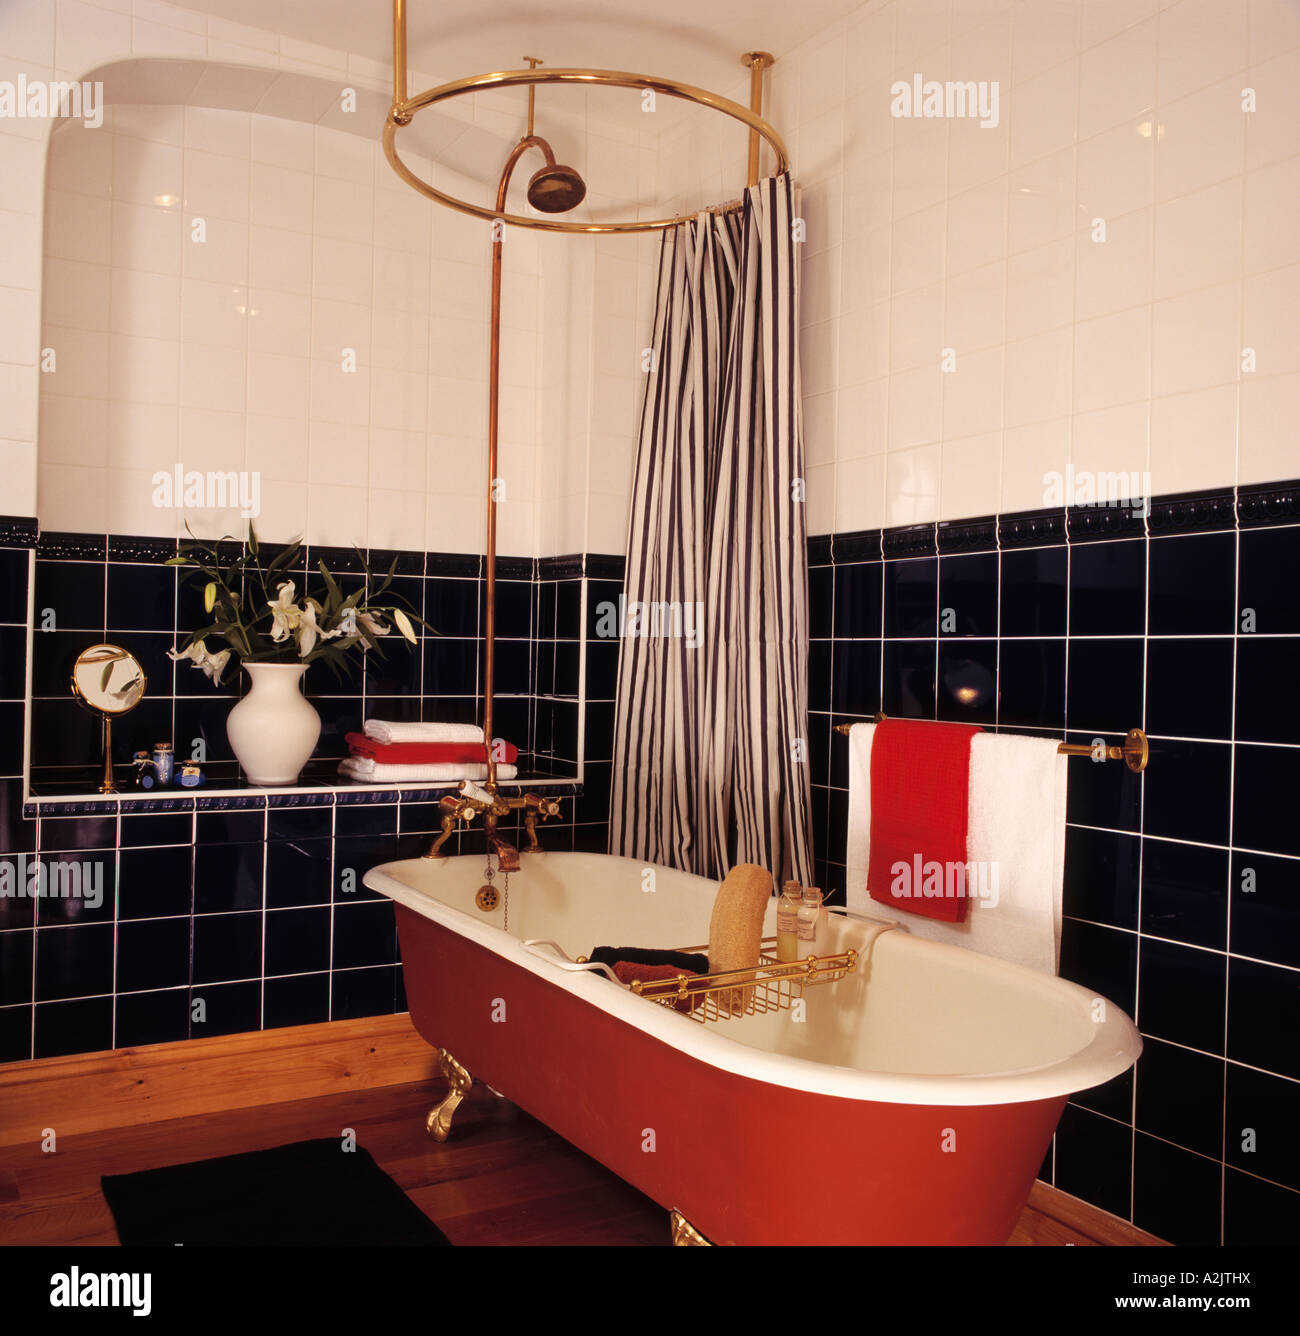 striped shower curtain on circular rail above red freestanding stock photo striped shower curtain on circular rail above red freestanding bath in black and white bathroom